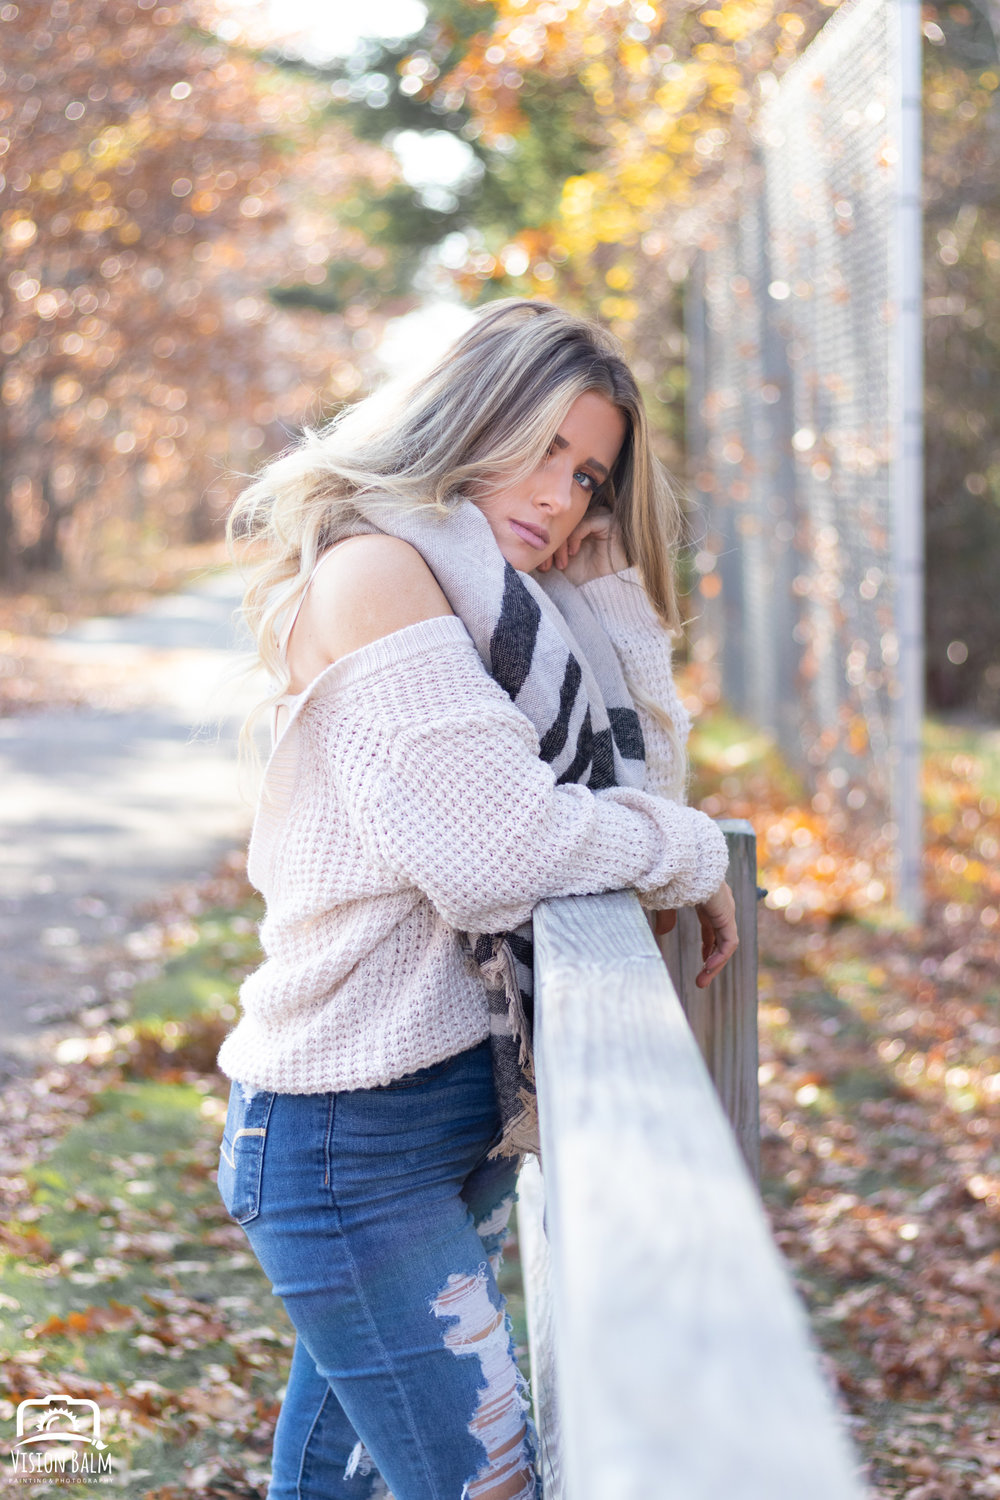 Professional fall portrait photography of model wearing a white sweater and scarf photographed by Vision Balm in Charleston, SC.